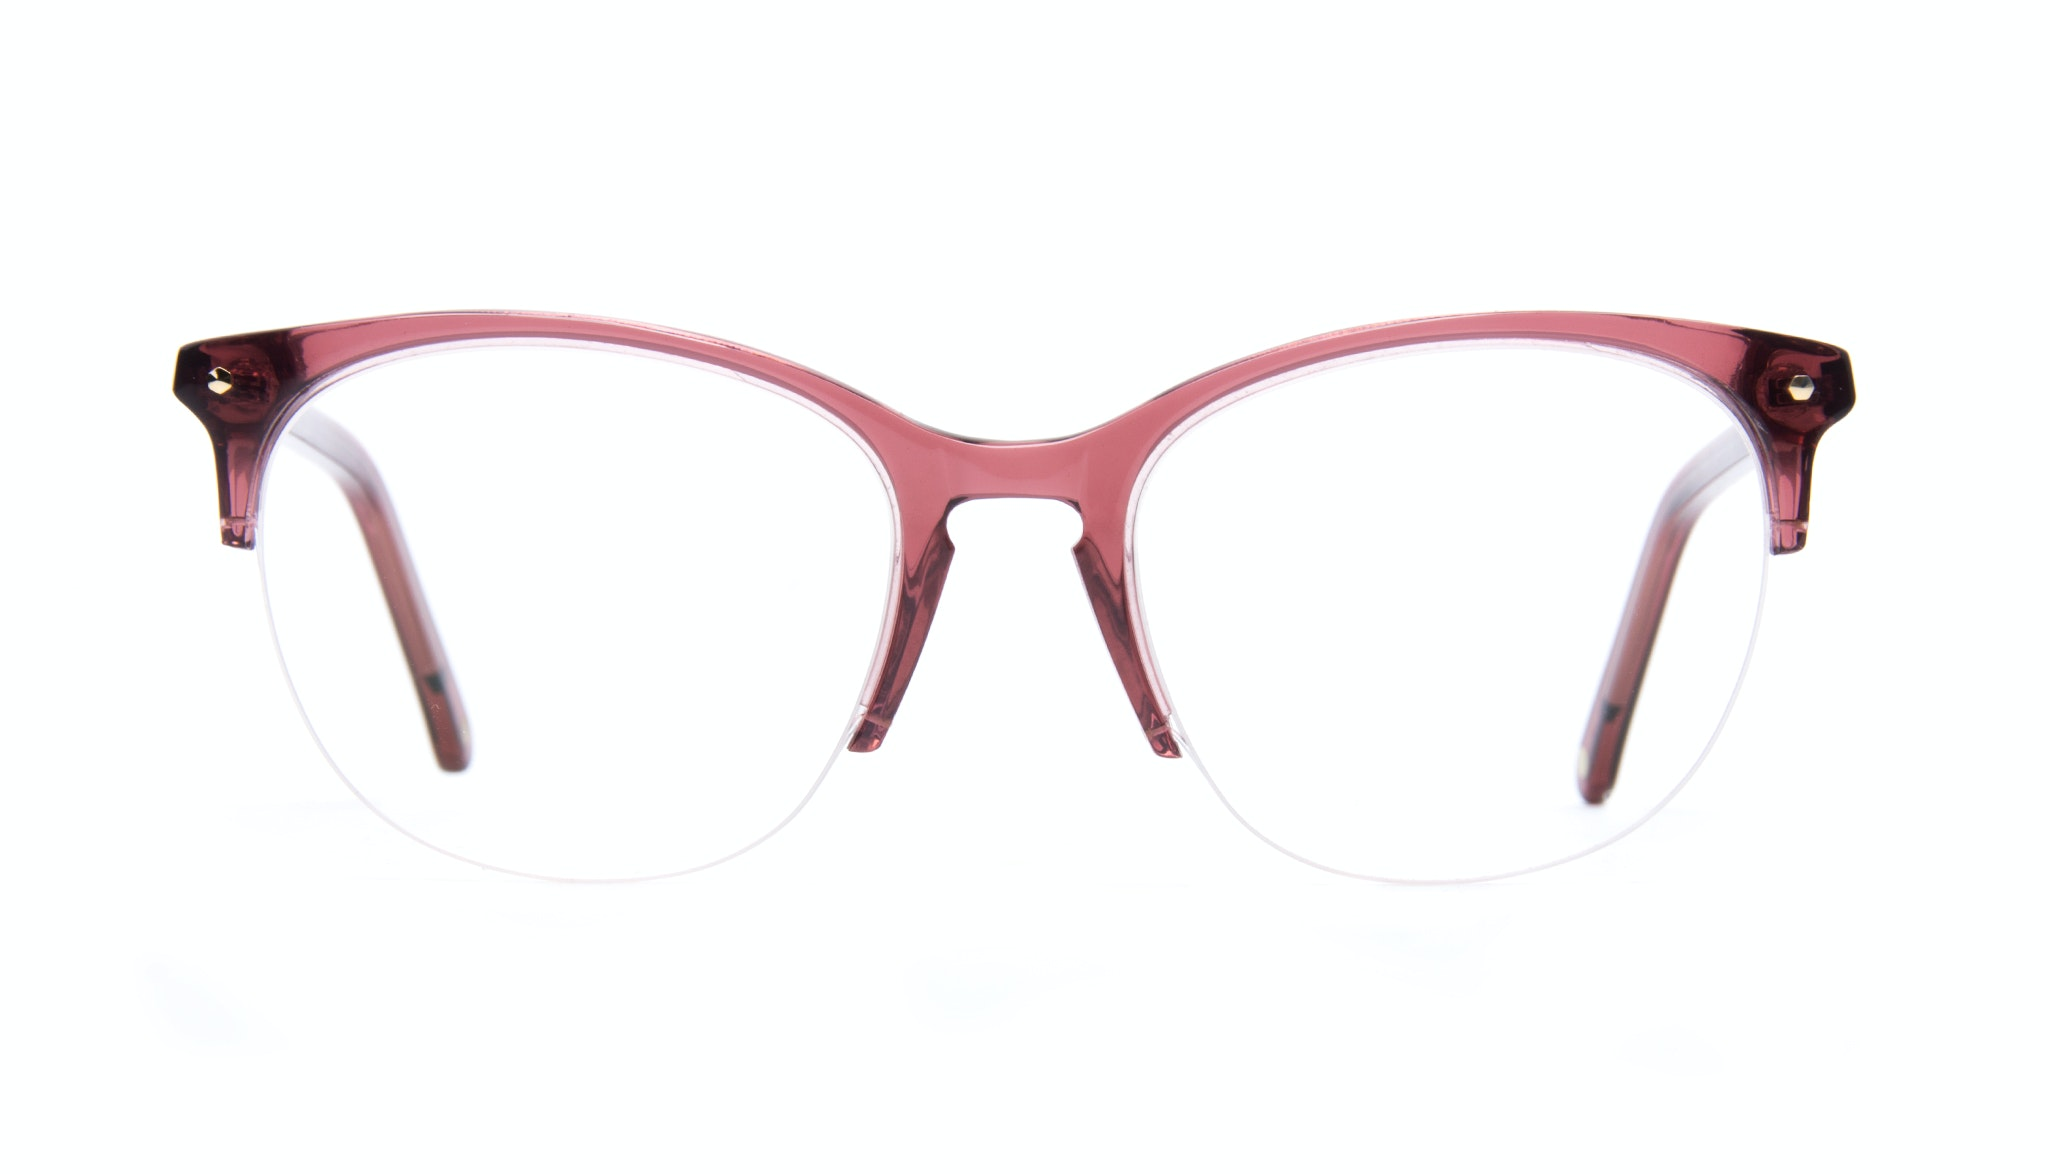 Affordable Fashion Glasses Rectangle Square Round Semi-Rimless Eyeglasses Women Nadine Light Winegum